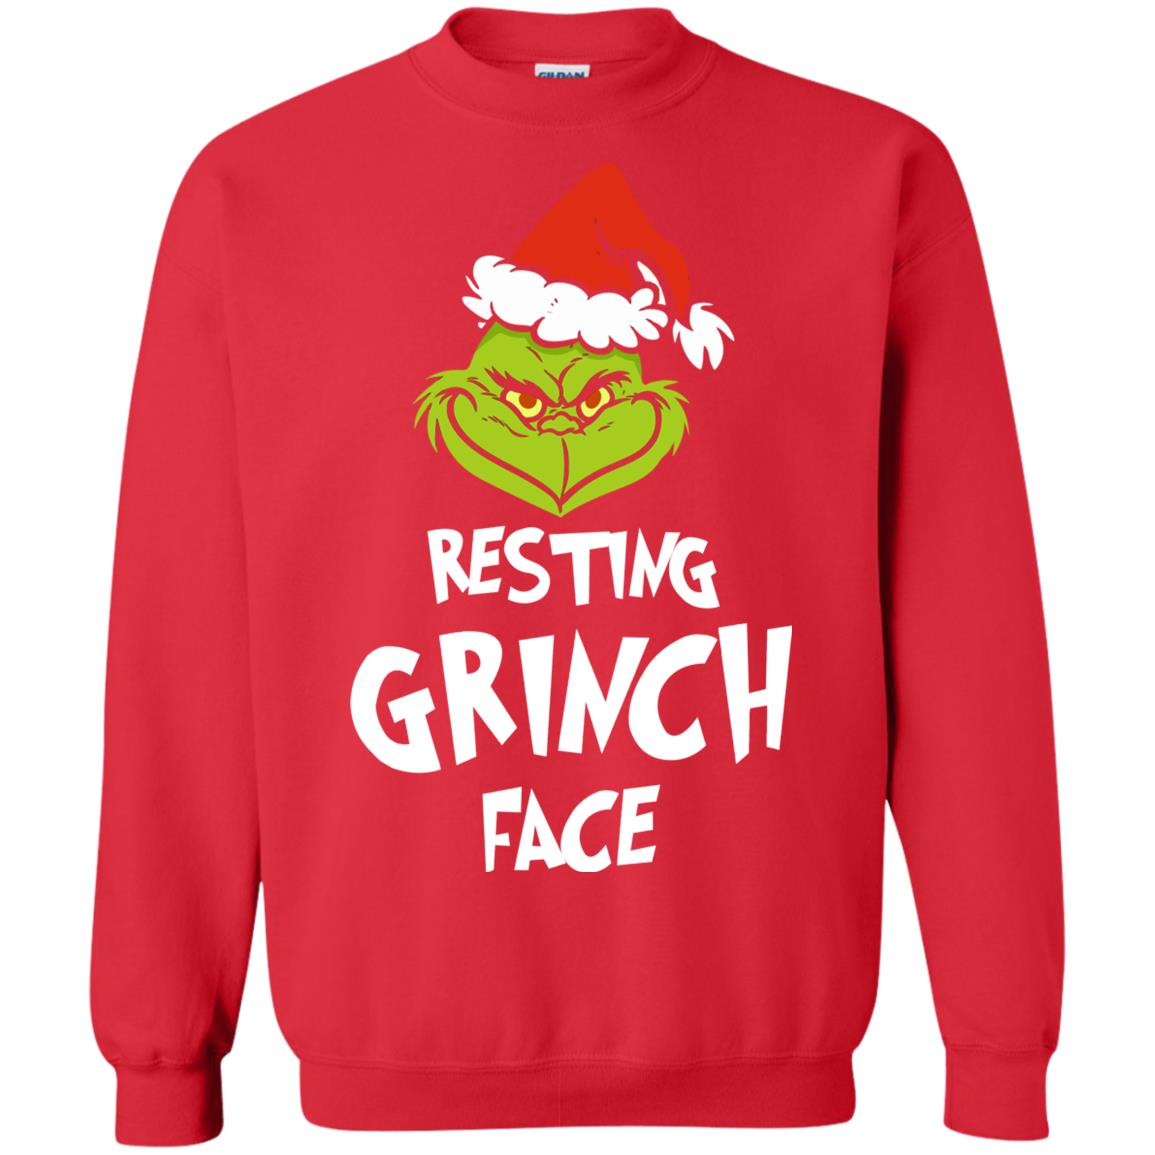 The Grinch Christmas Sweater.Resting Grinch Face Mr Grinch Christmas Sweater